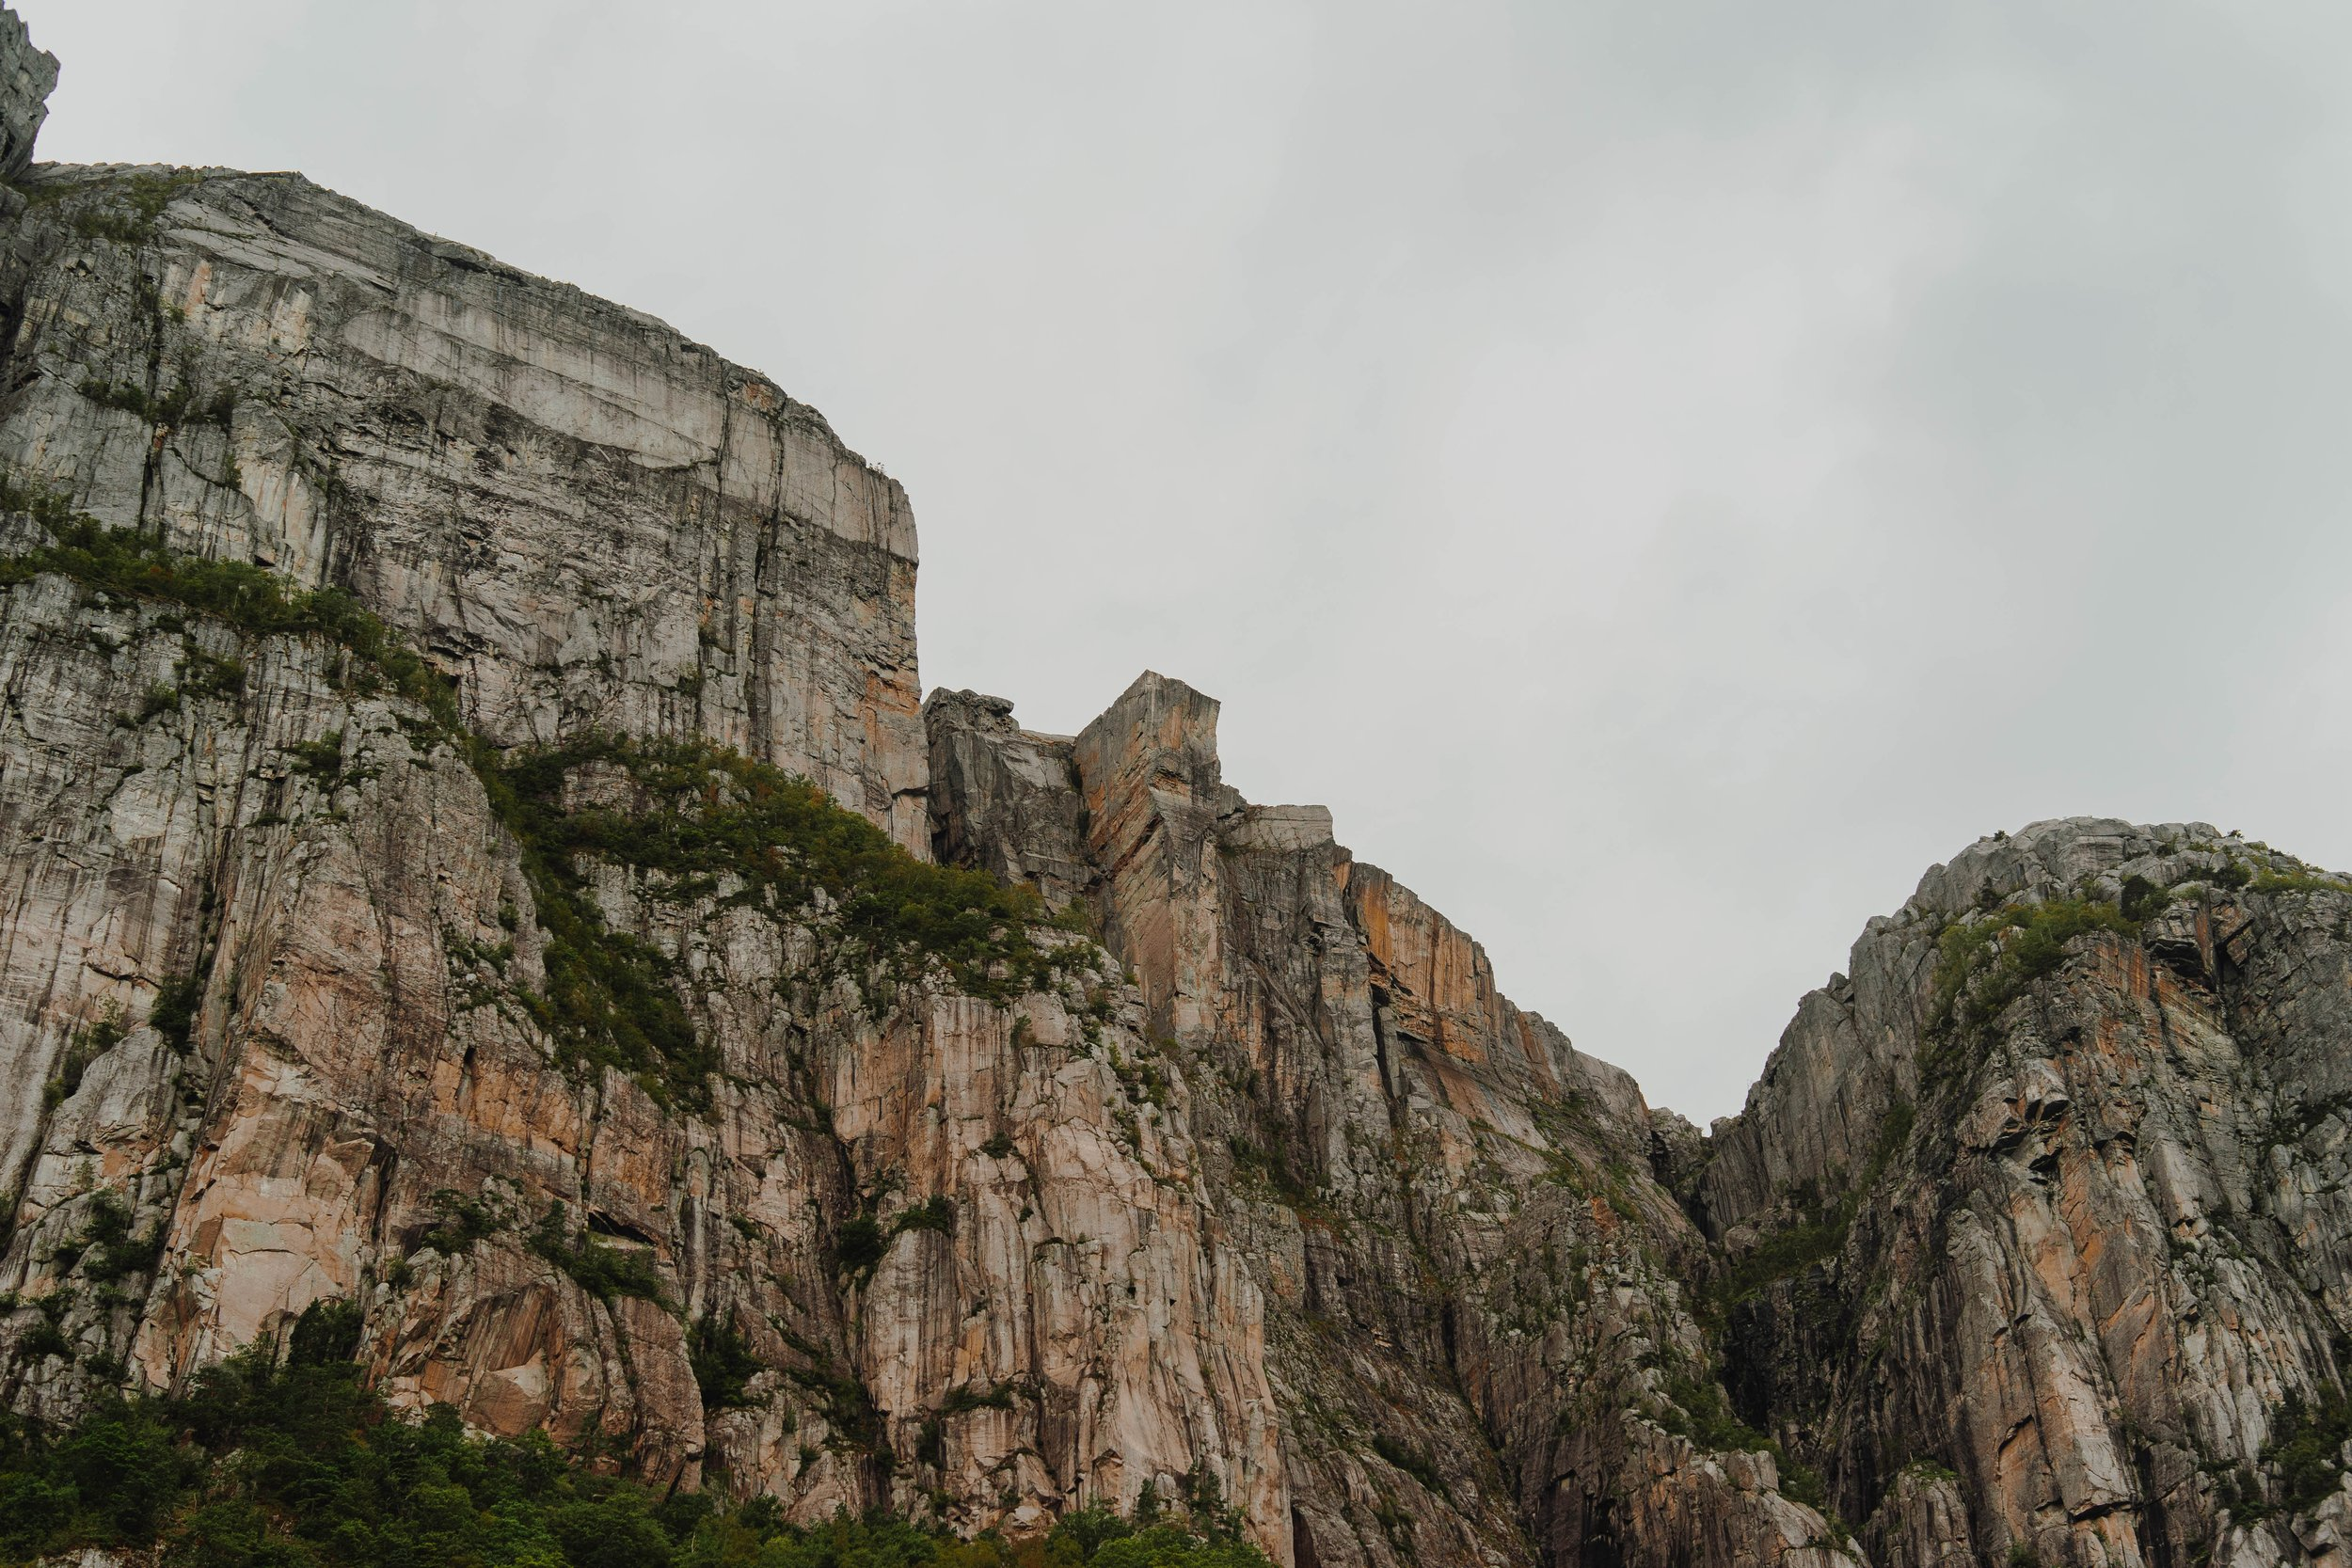 What a cloudy, non-foggy day looks like - Preikestolen as seen from the Lysefjord ferry